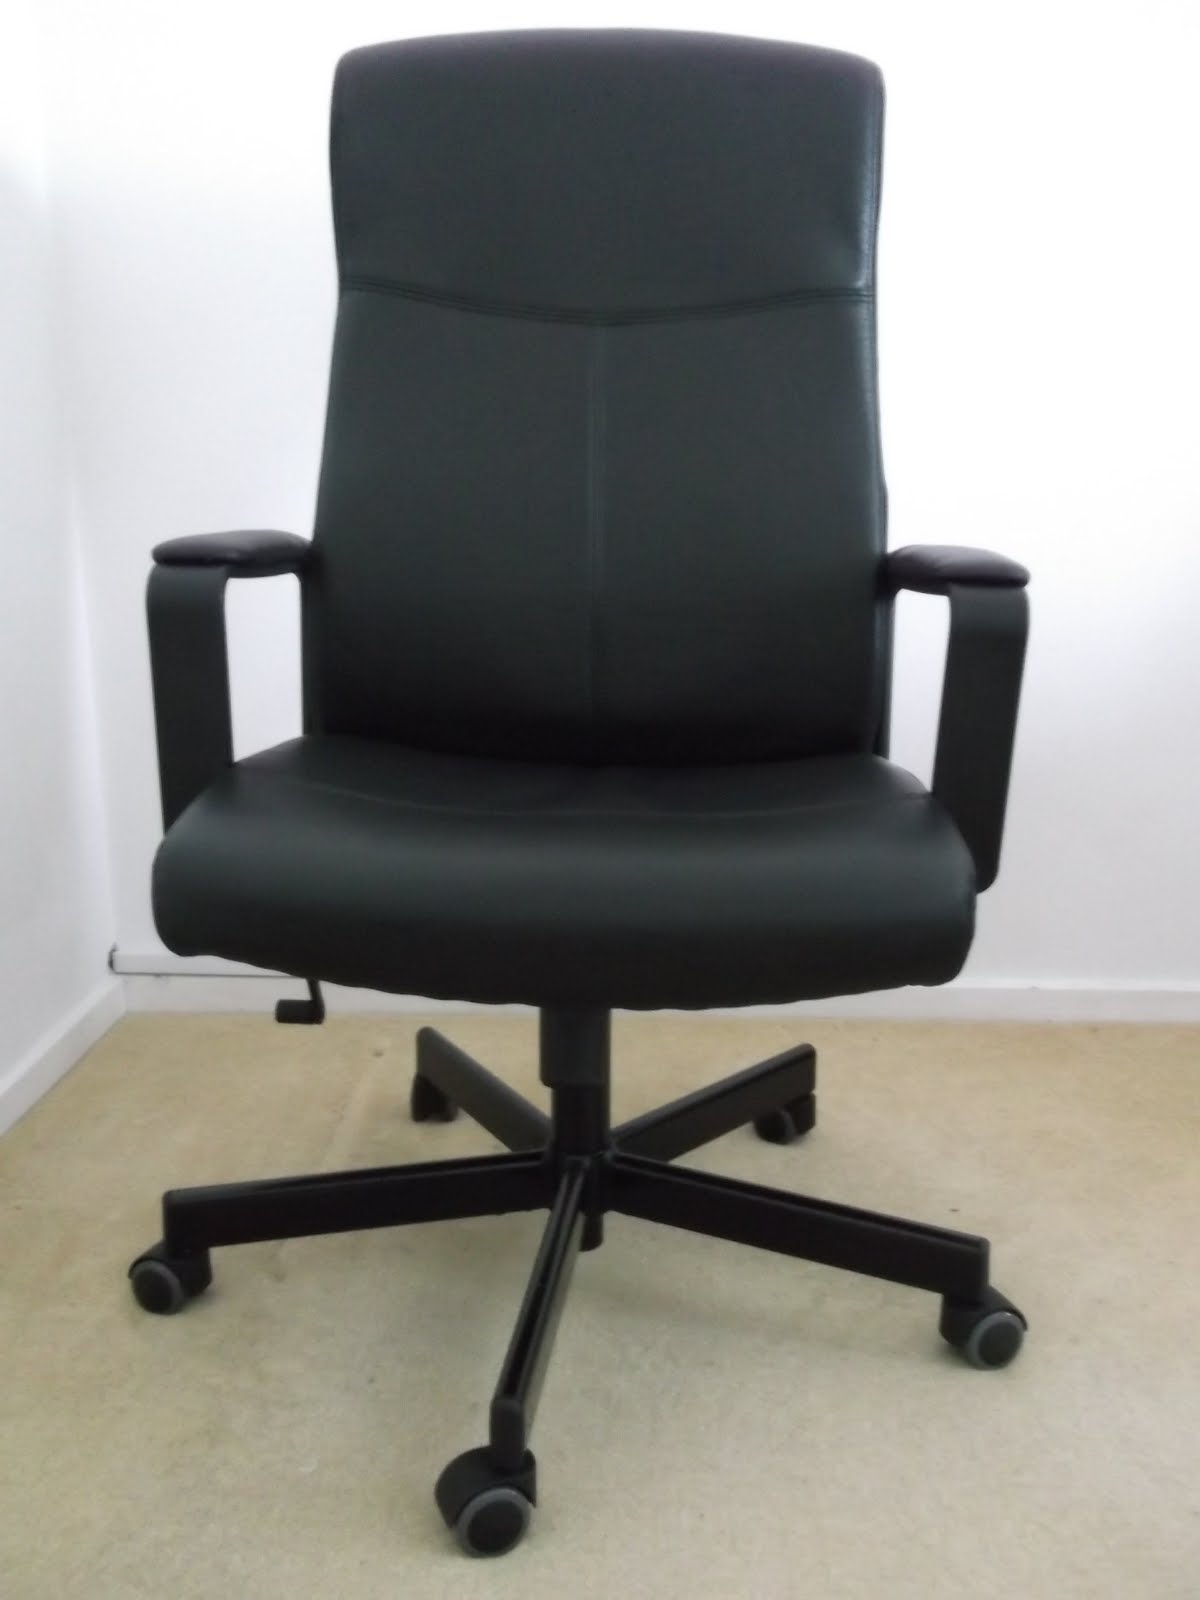 bedroomremarkable ikea chair office furniture chairs. Ikea Swivel Office Chair. Malkolm Chair E Bedroomremarkable Furniture Chairs R